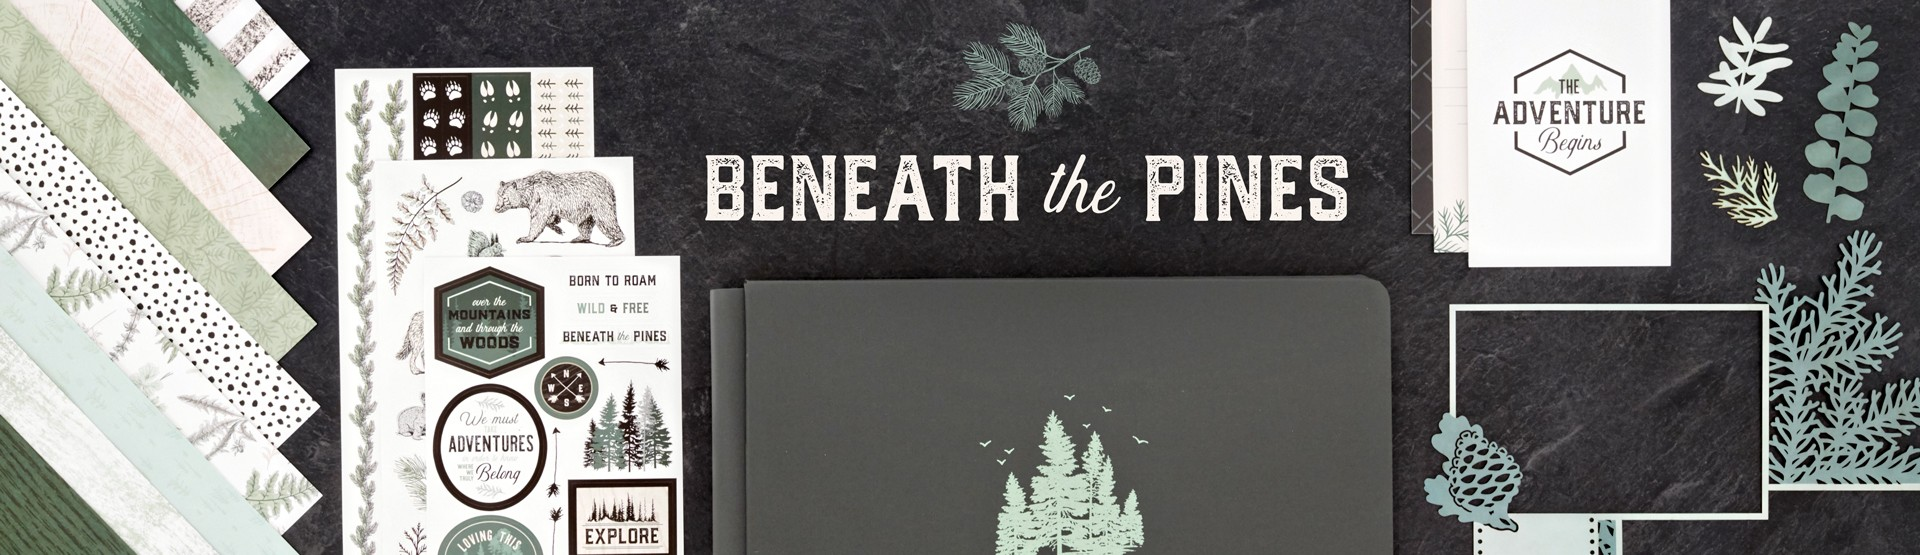 Forest & Outdoors: Beneath the Pines